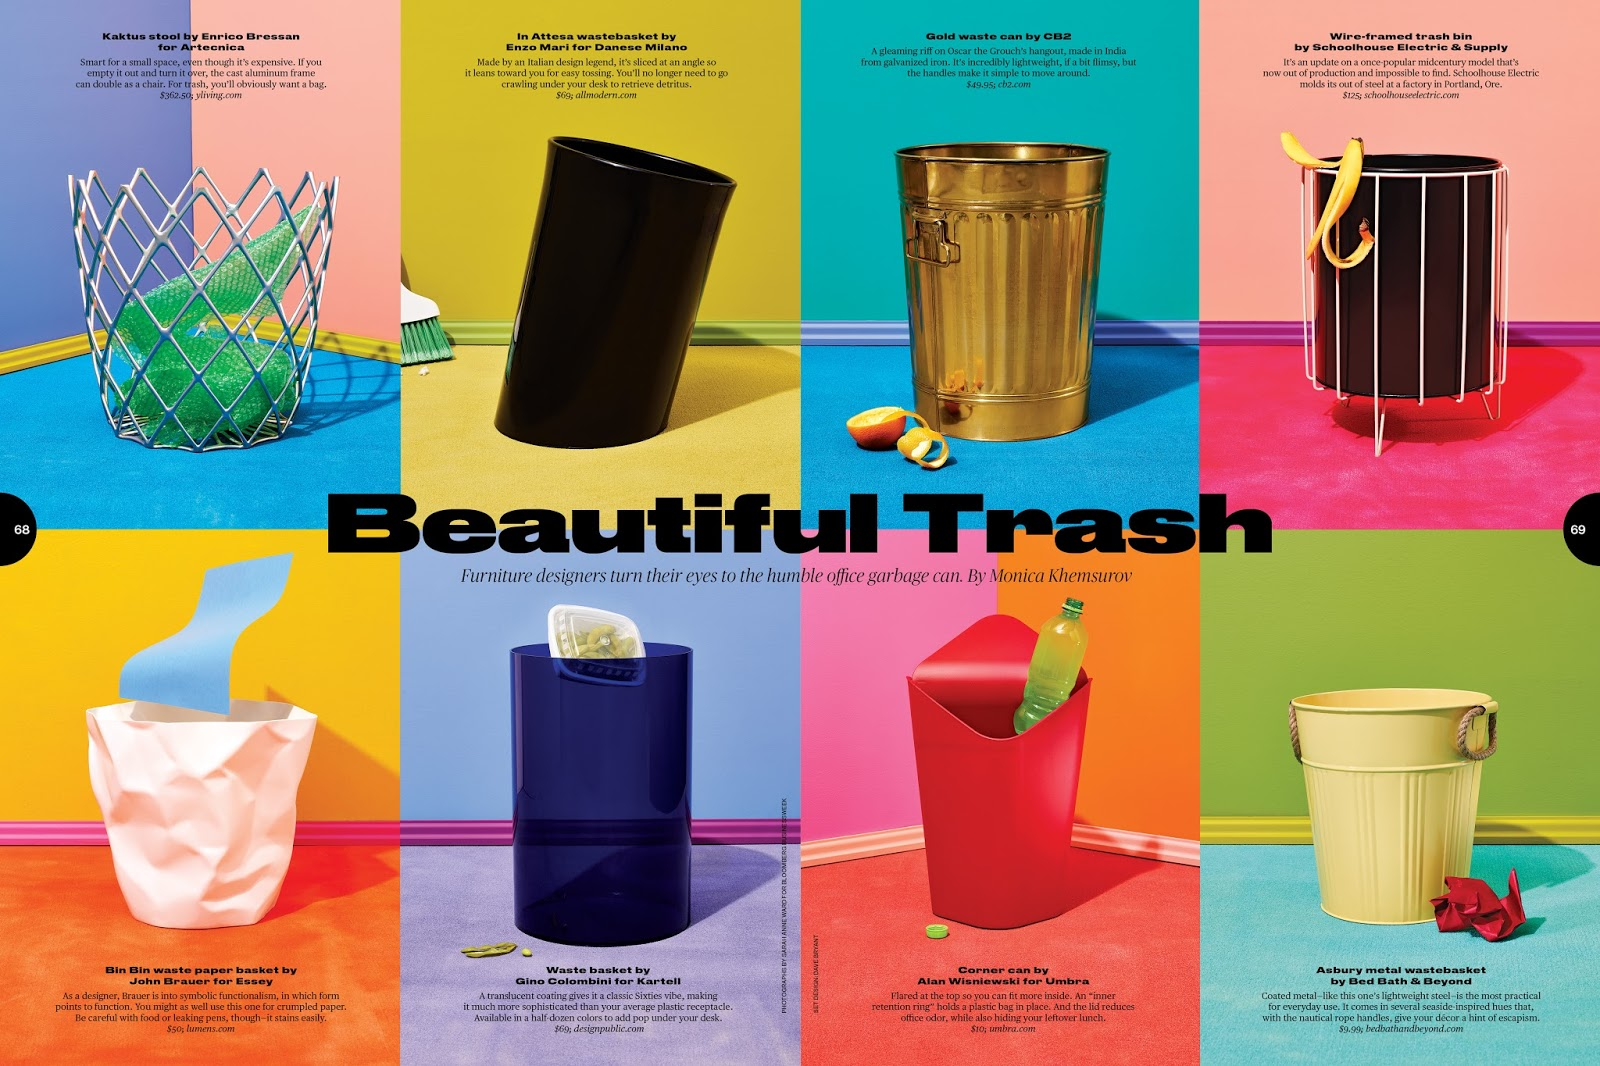 Attractive Trash Cans Sarah Anne Ward Photography News Beautiful Trash Can